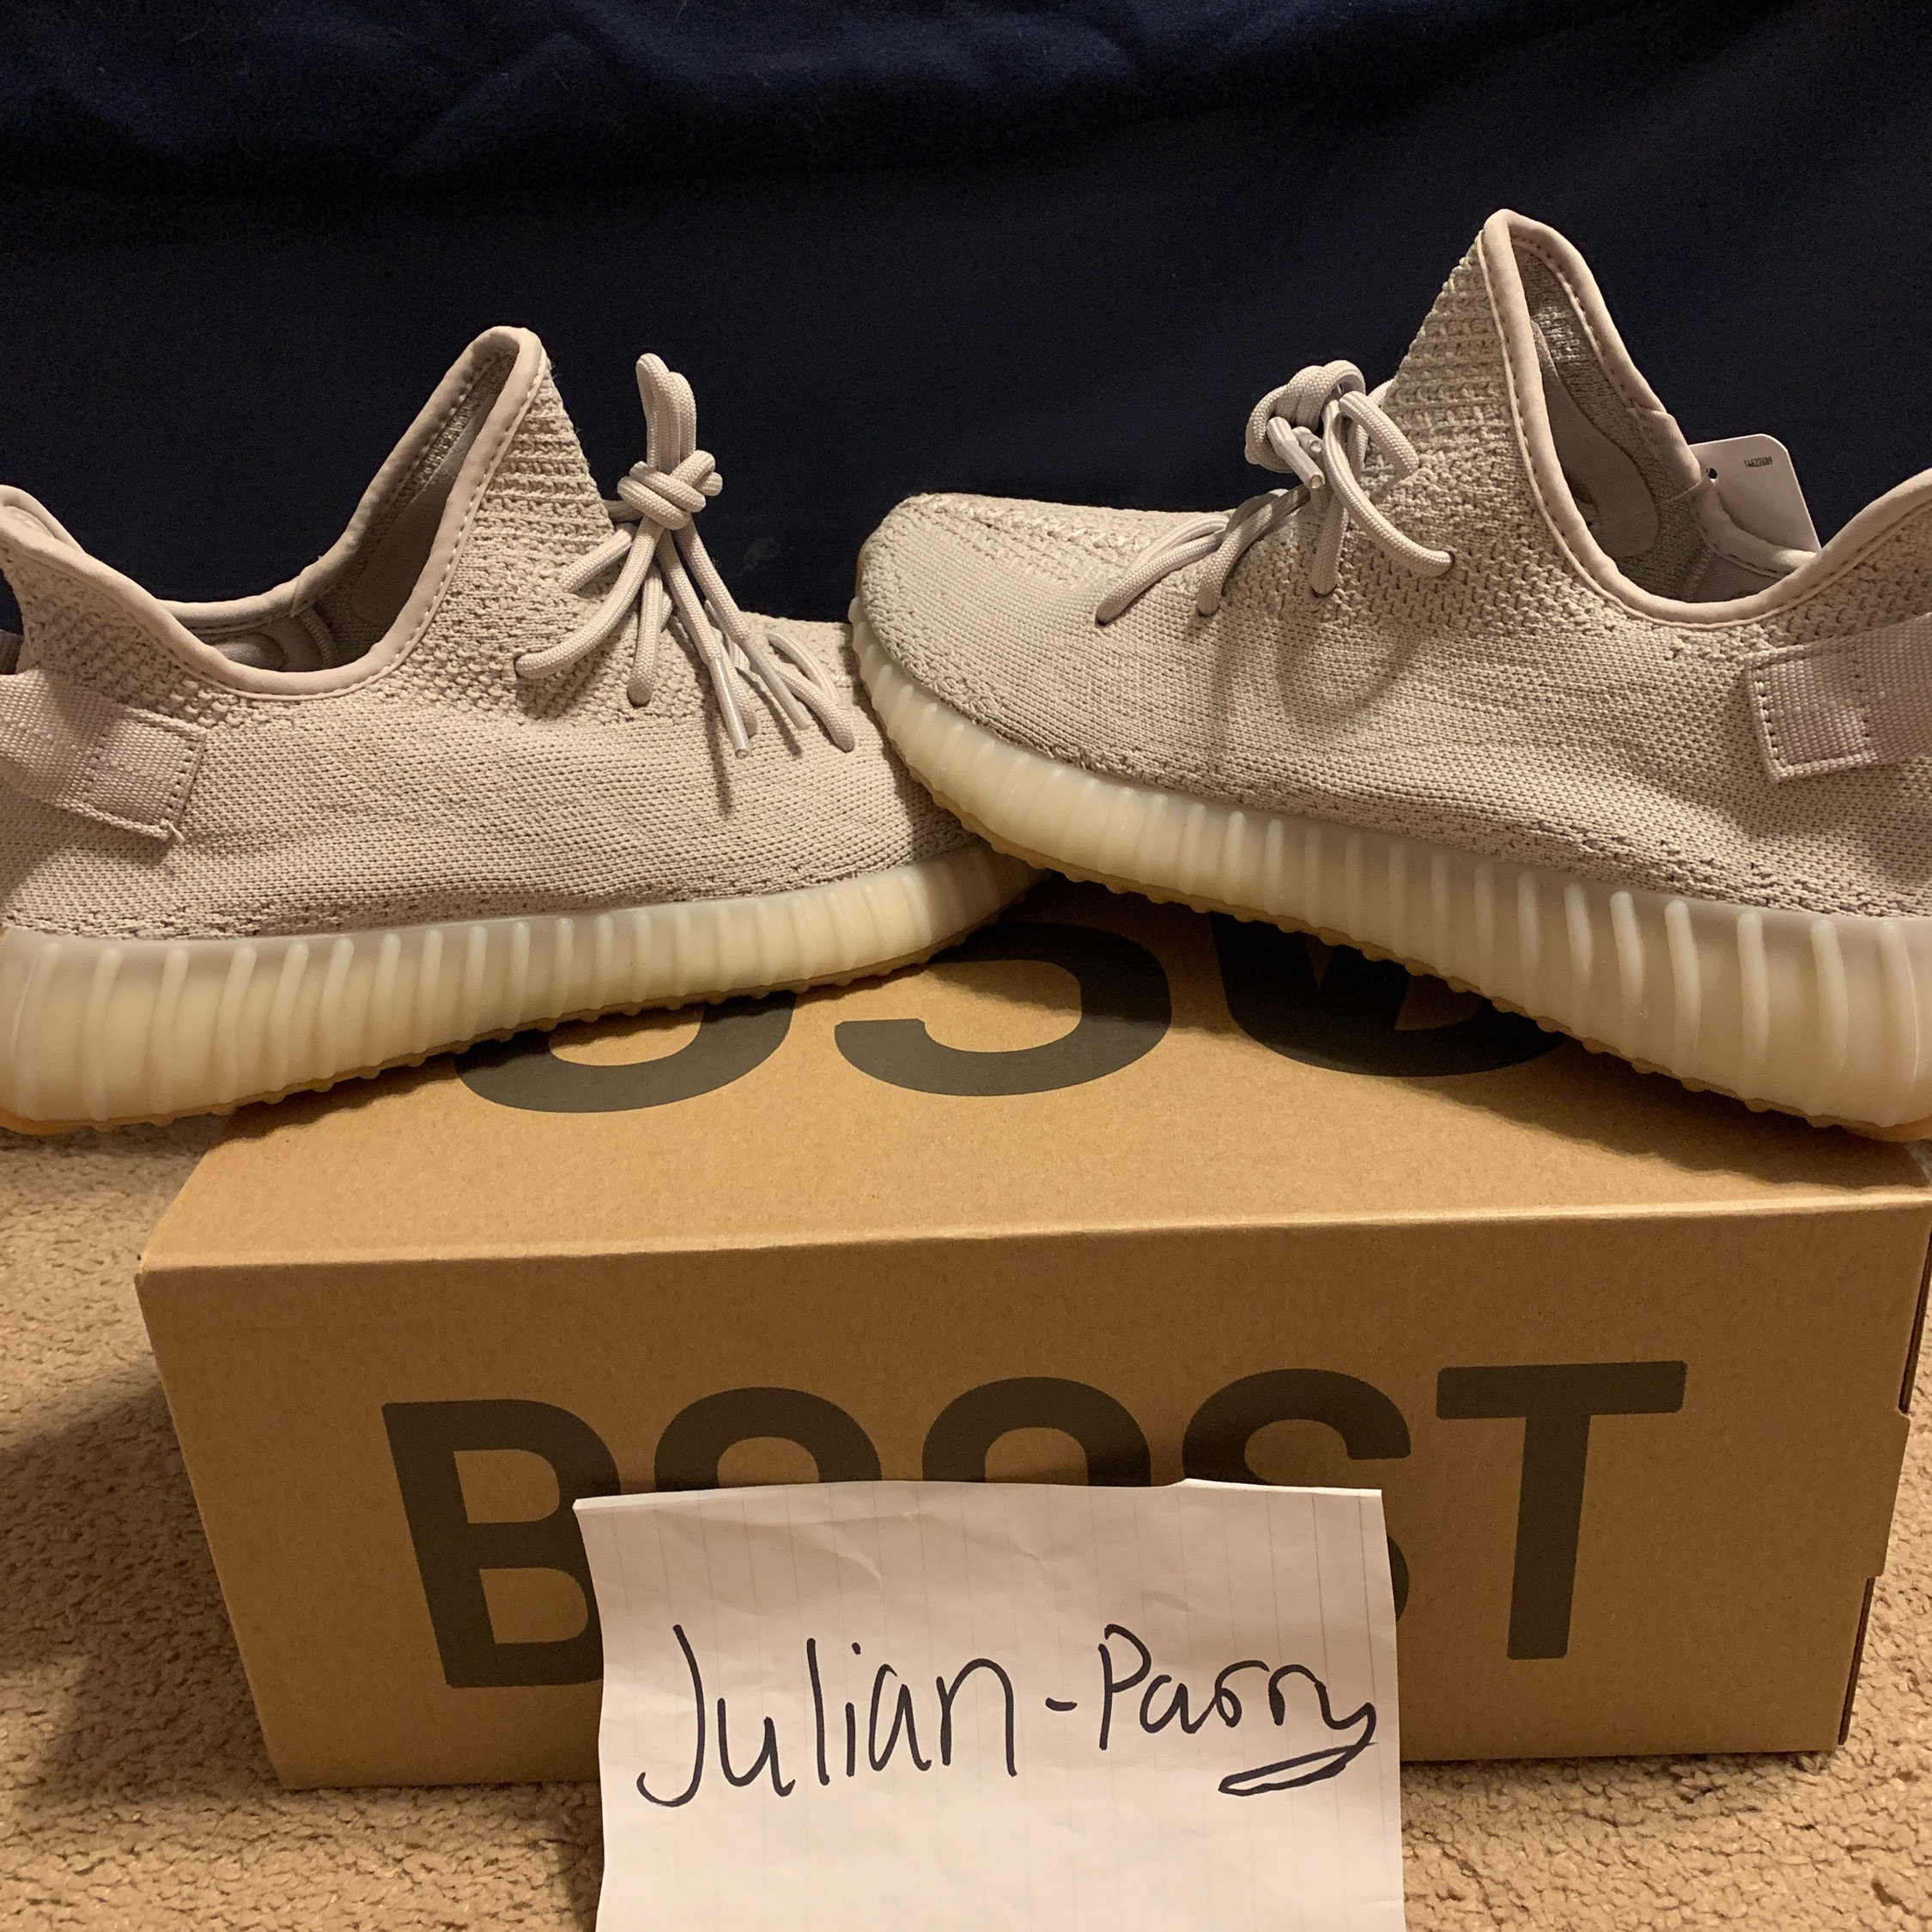 yeezy turtle dove ebay